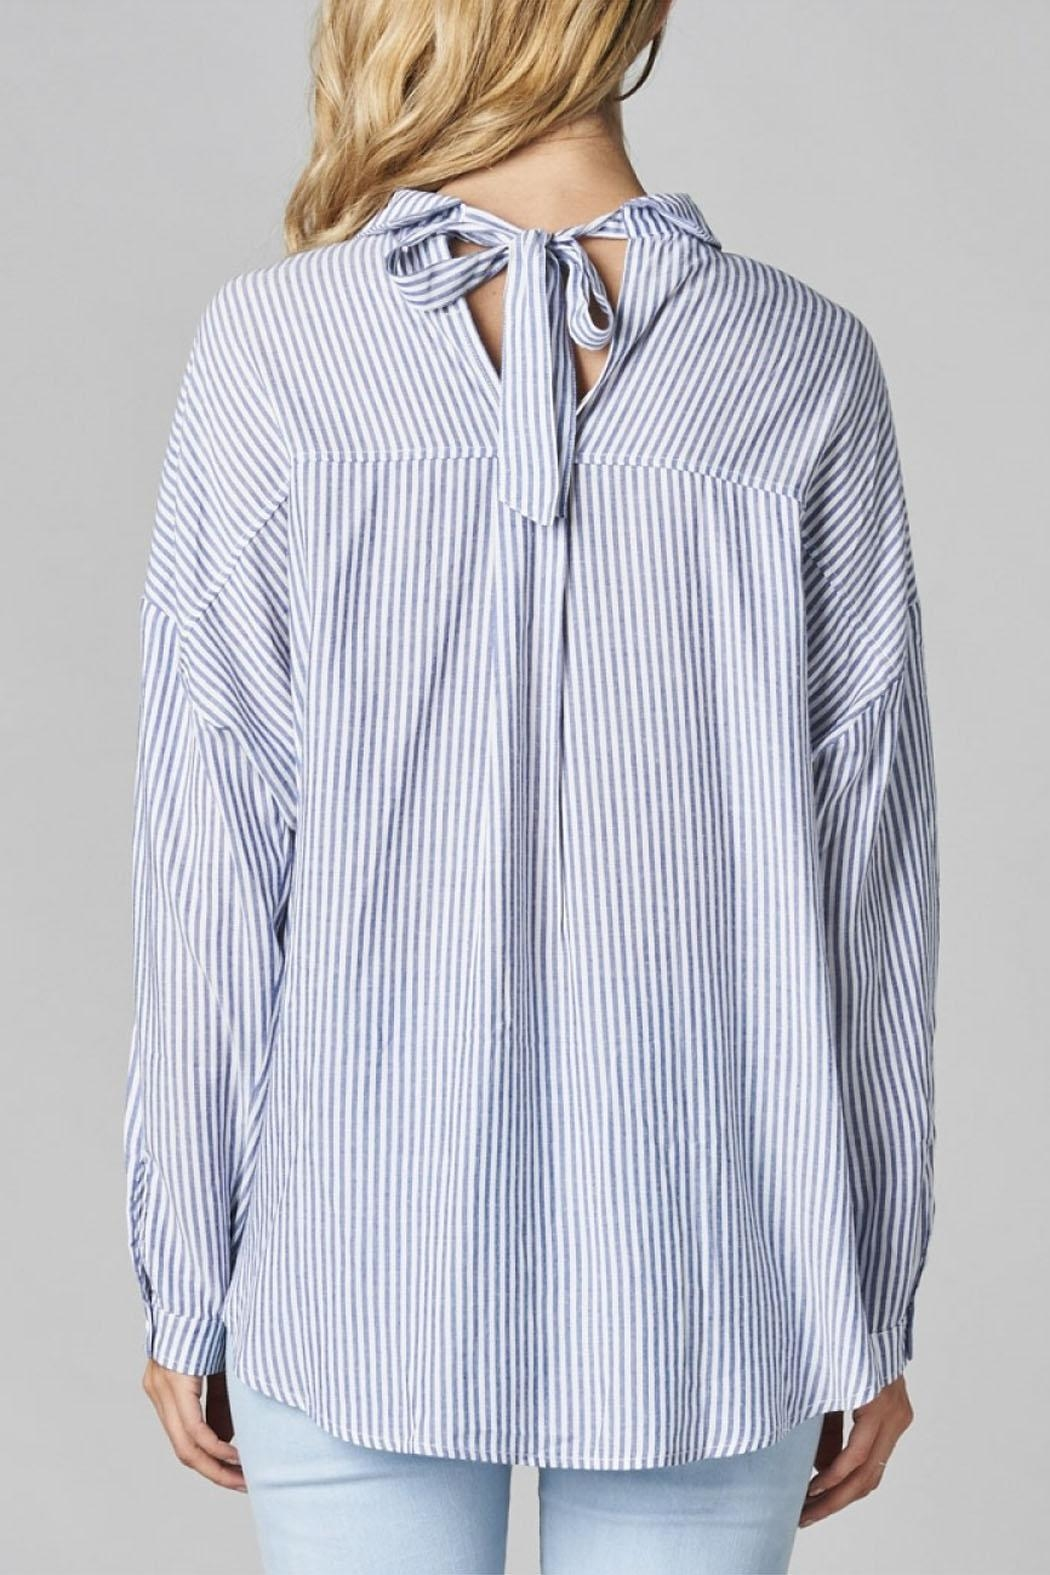 Cotton Bleu Striped Button Up Shirt - Side Cropped Image